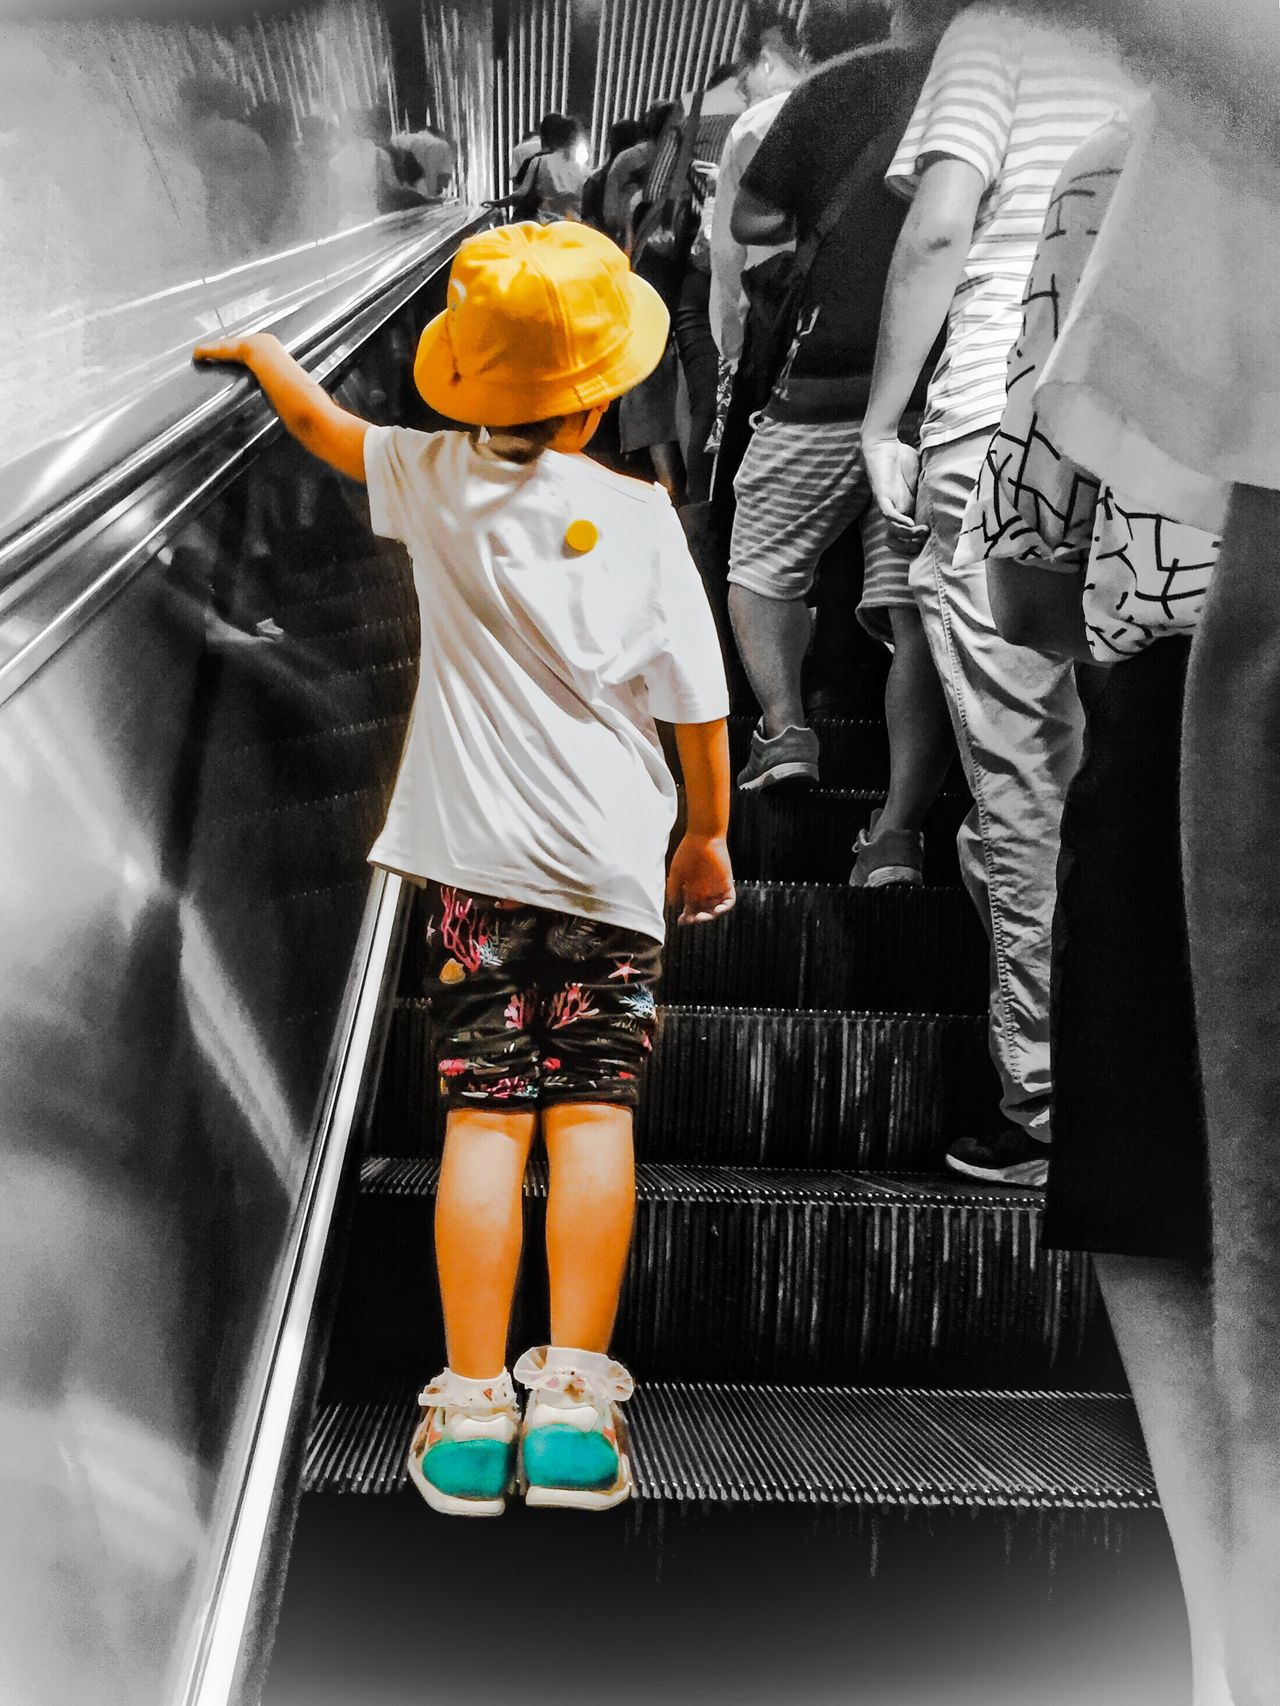 Shanghai street 02 --A small girl wearing yellow hat Shanghai Streets Hanging Out Shanghai Subway From My Point Of View EyeEm Best Shots Streetphotography IPhoneography Shanghai Photography My City Taking Photos Shanghai Life Colour Of Life Children My Street Photography